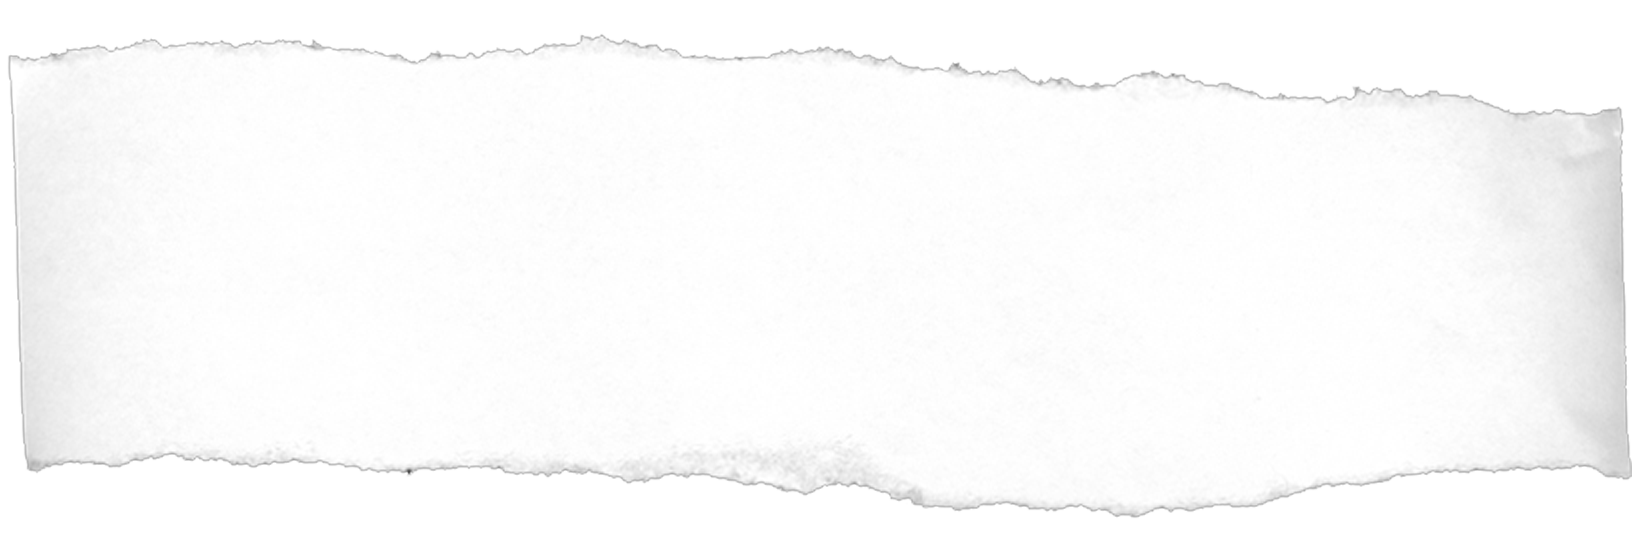 Free Ripped Paper Png, Download Free Clip Art, Free Clip Art.